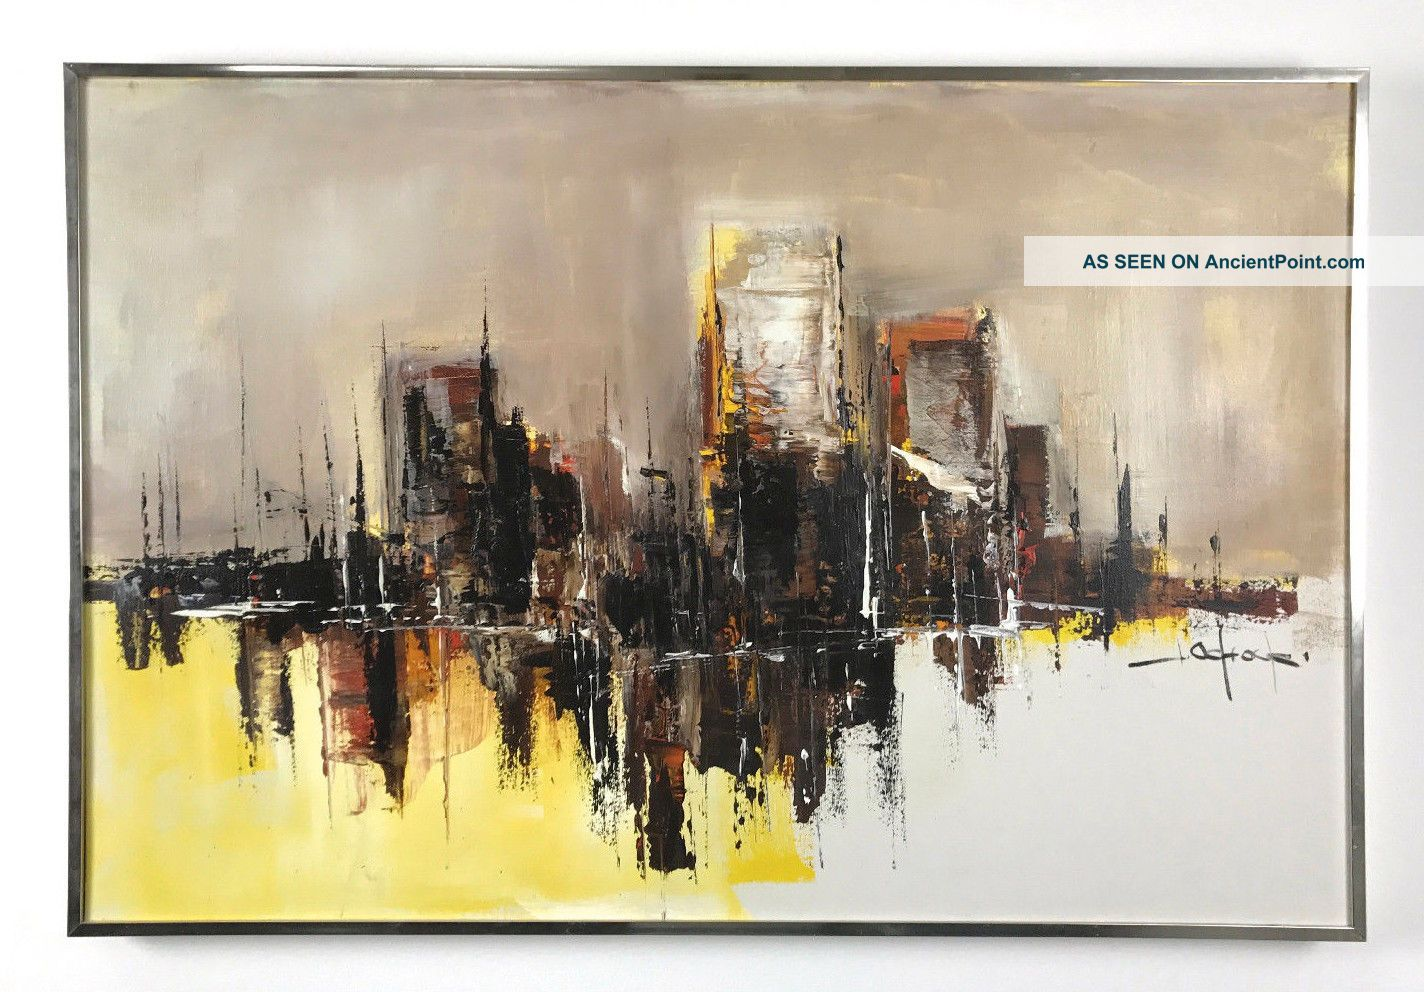 36x24 Vintage Signed Abstract Cityscape Oil Painting Mid Century Modern Mid-Century Modernism photo